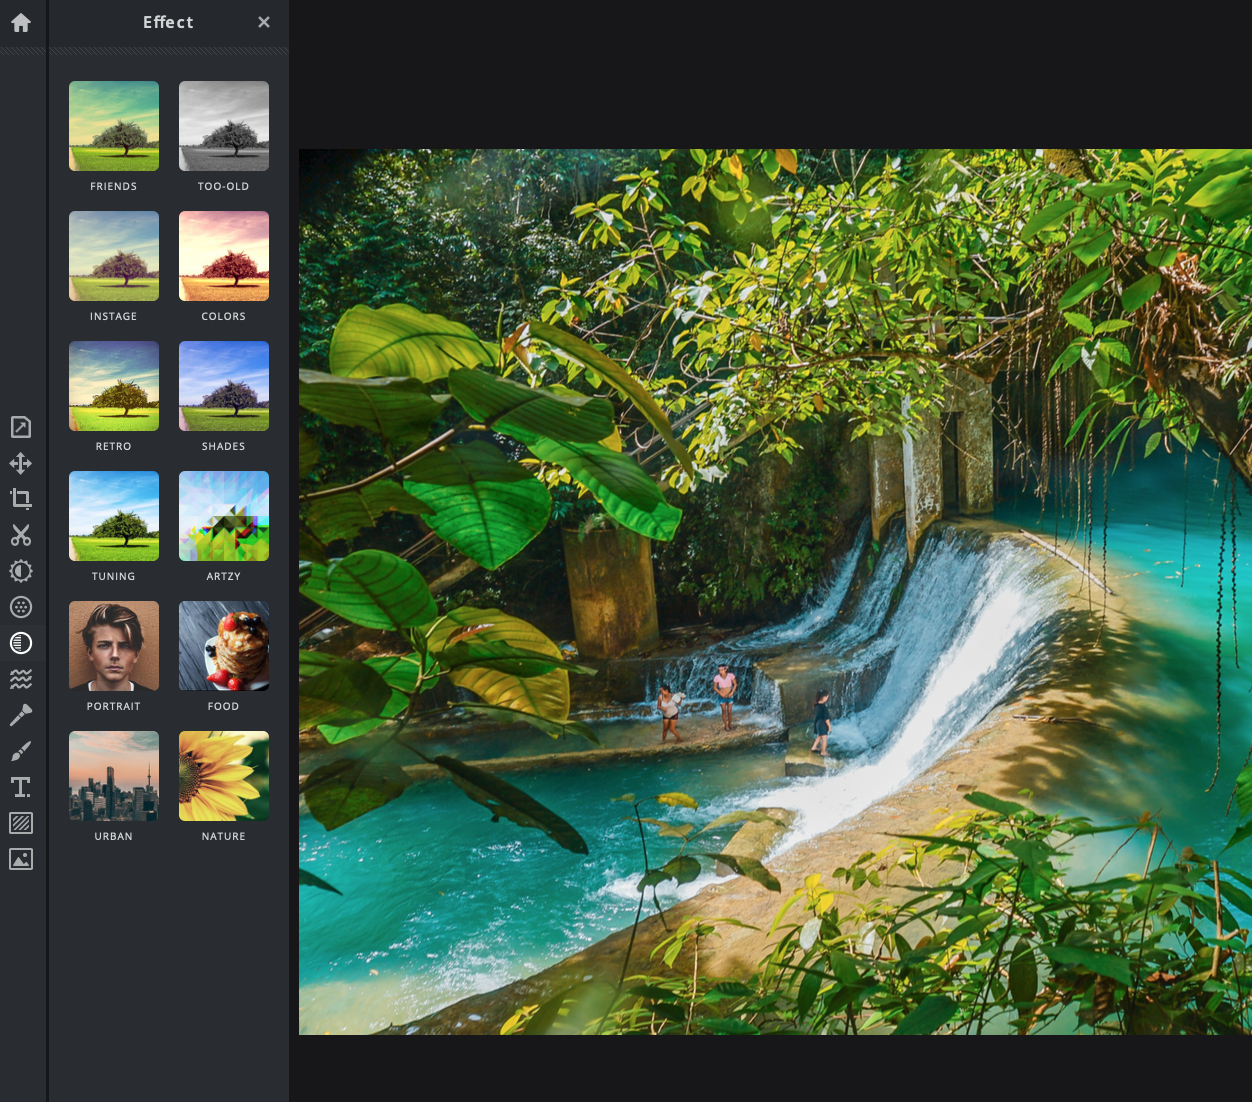 The All-New Pixlr X (Updates & Releases) - PIXLR Blog